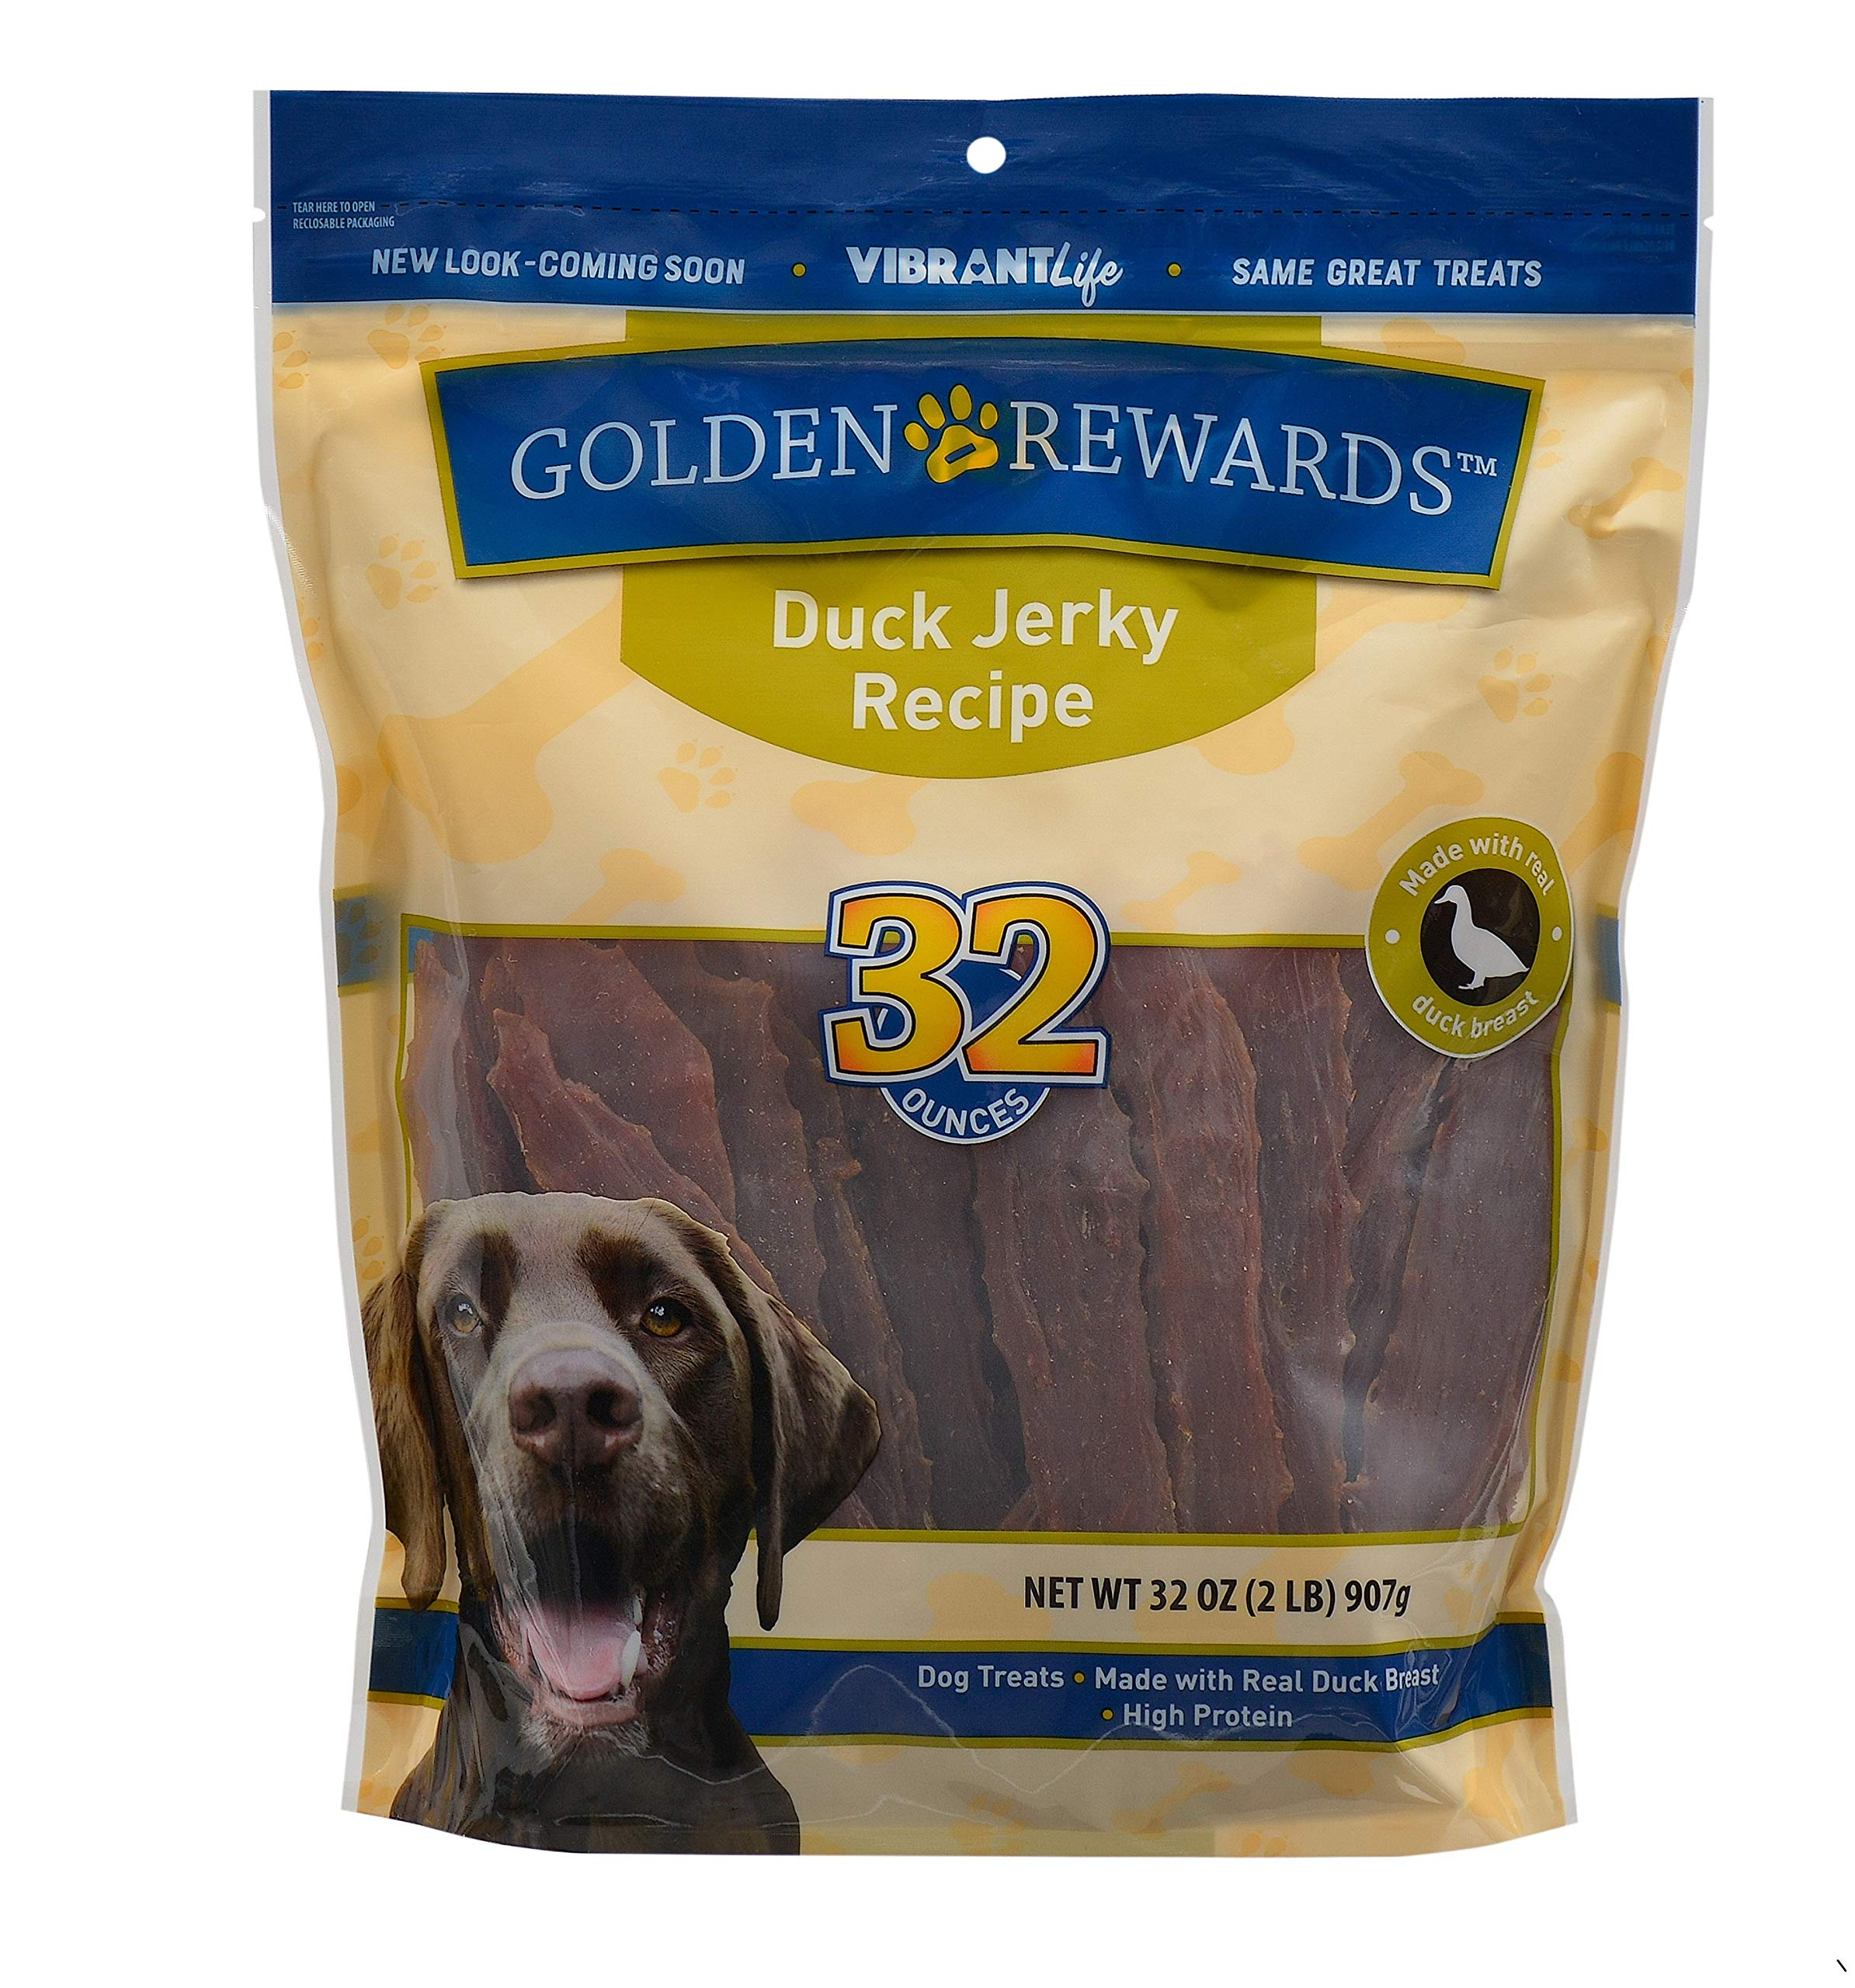 PACK OF 2 - Golden Rewards Duck Jerky Dog Treats, 32 oz